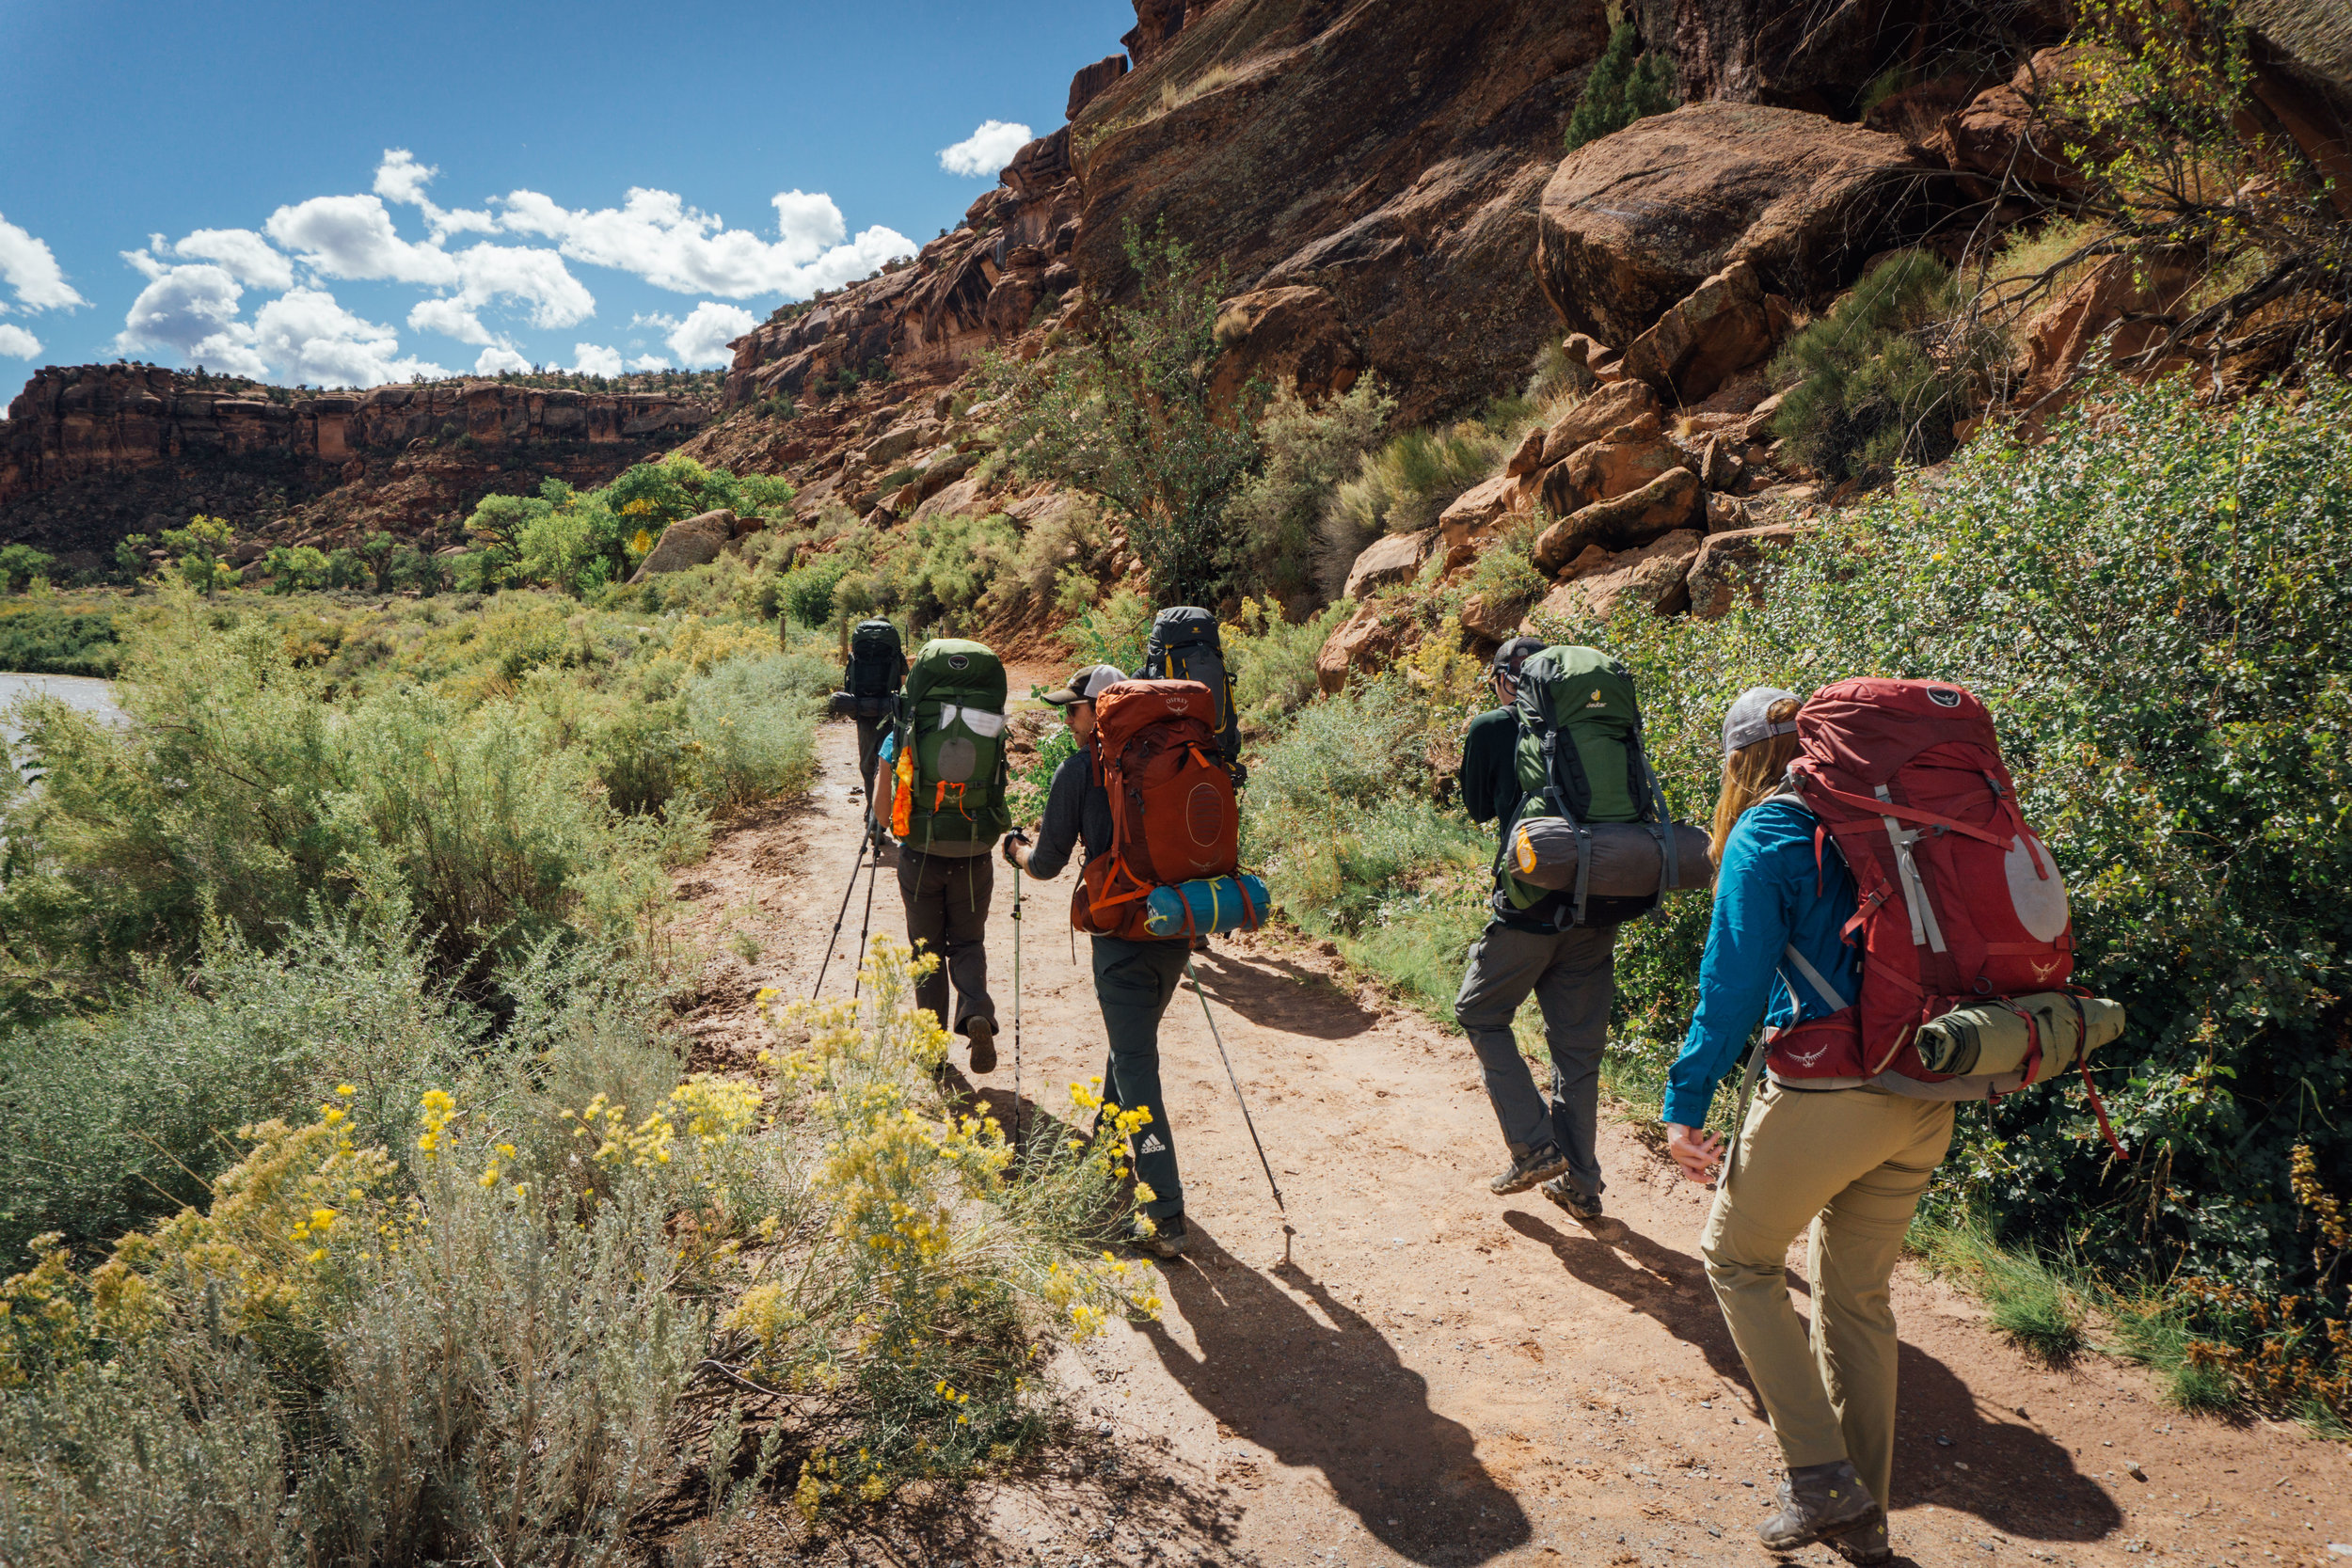 Hiking along the Gunnison from Bridgeport, to Little Dominguez Canyon.